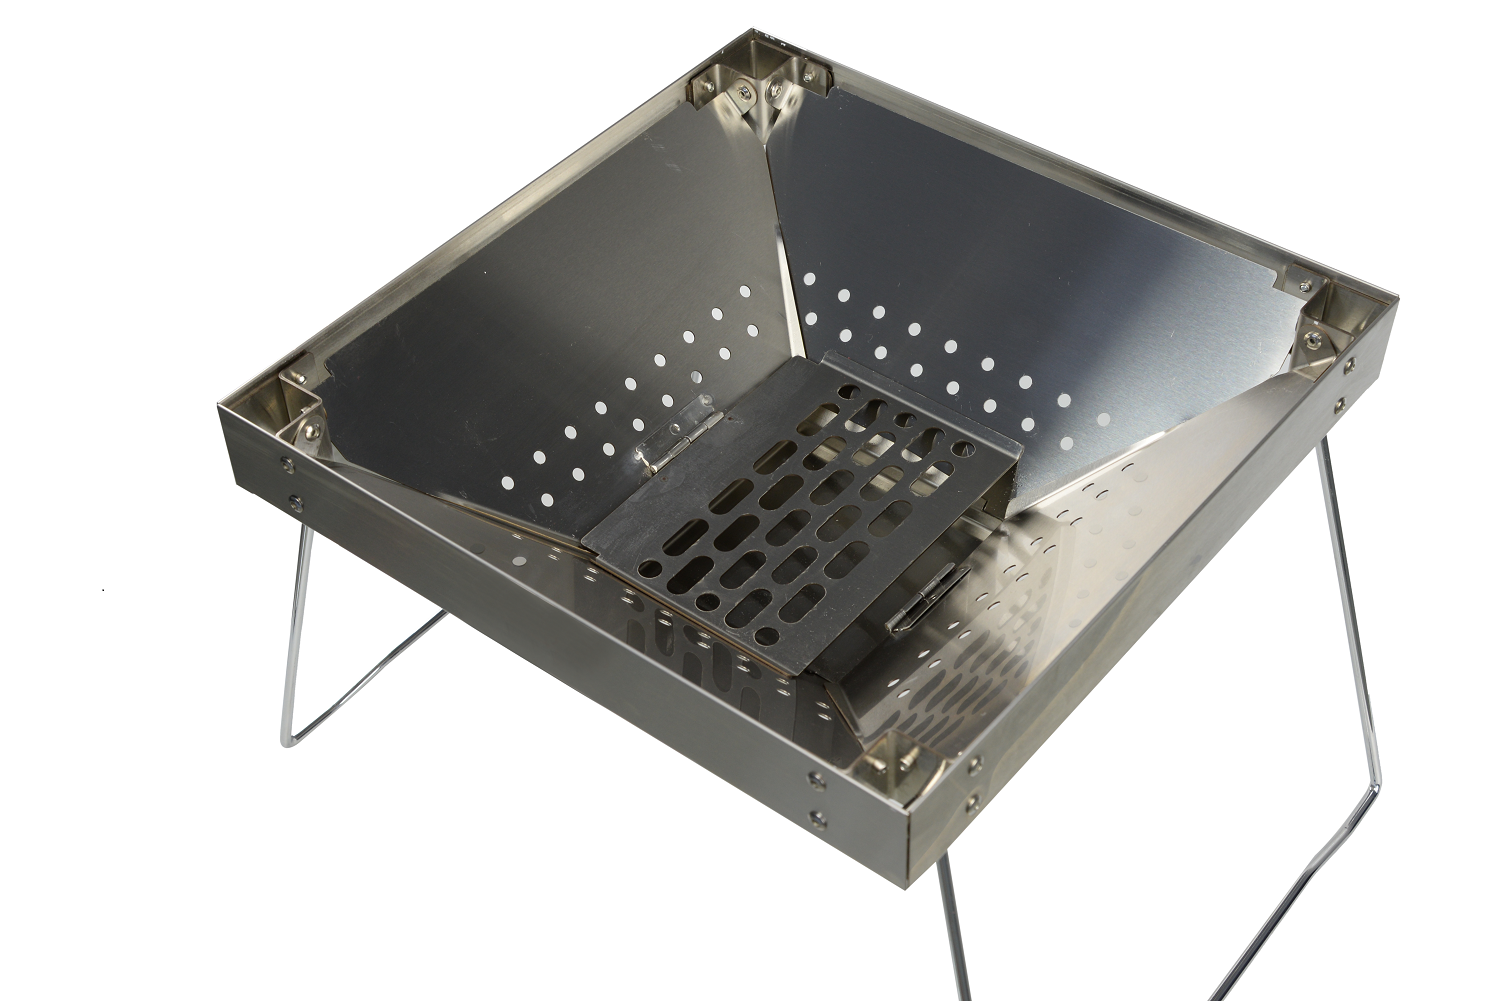 Premium Stainless Steel Portable Charcoal BBQ Grill image